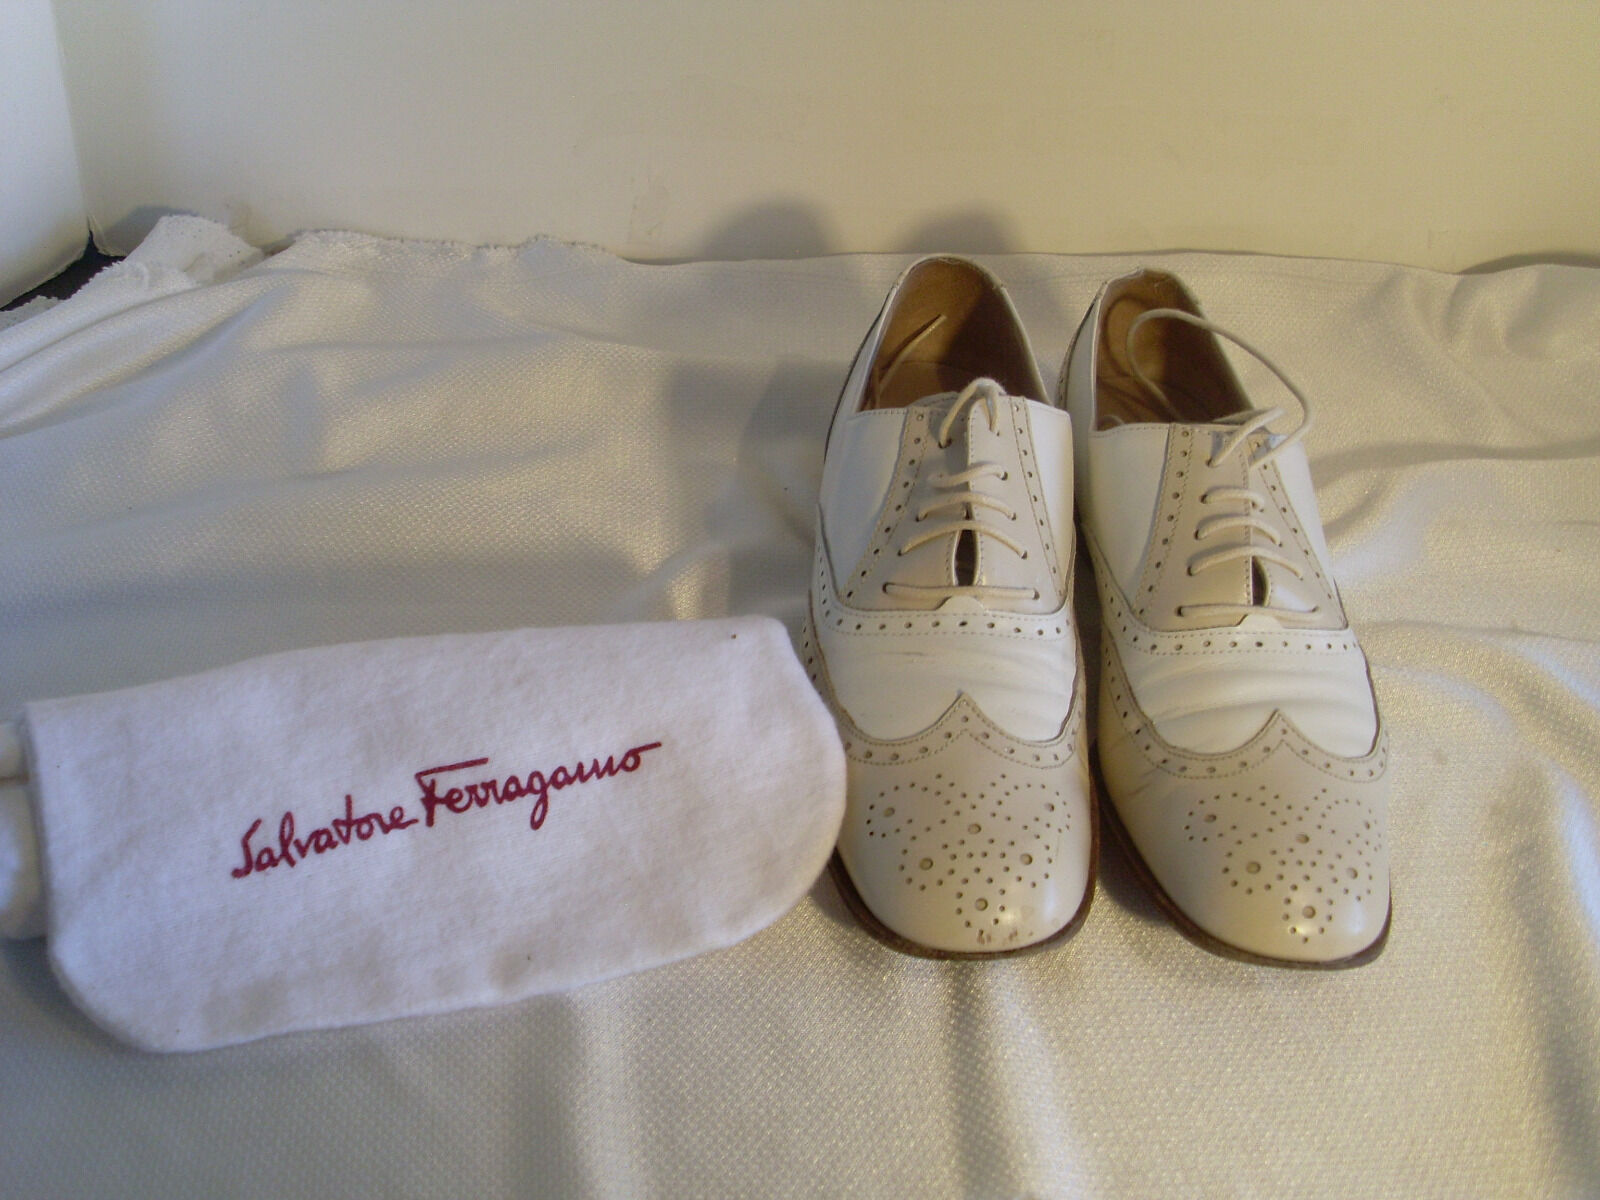 SALVATORE FERRAGAMO OXFORD LACE UP TAN BEIGE SZ 4 4 4 1 2 B W CLOTH BAG 35 59c168